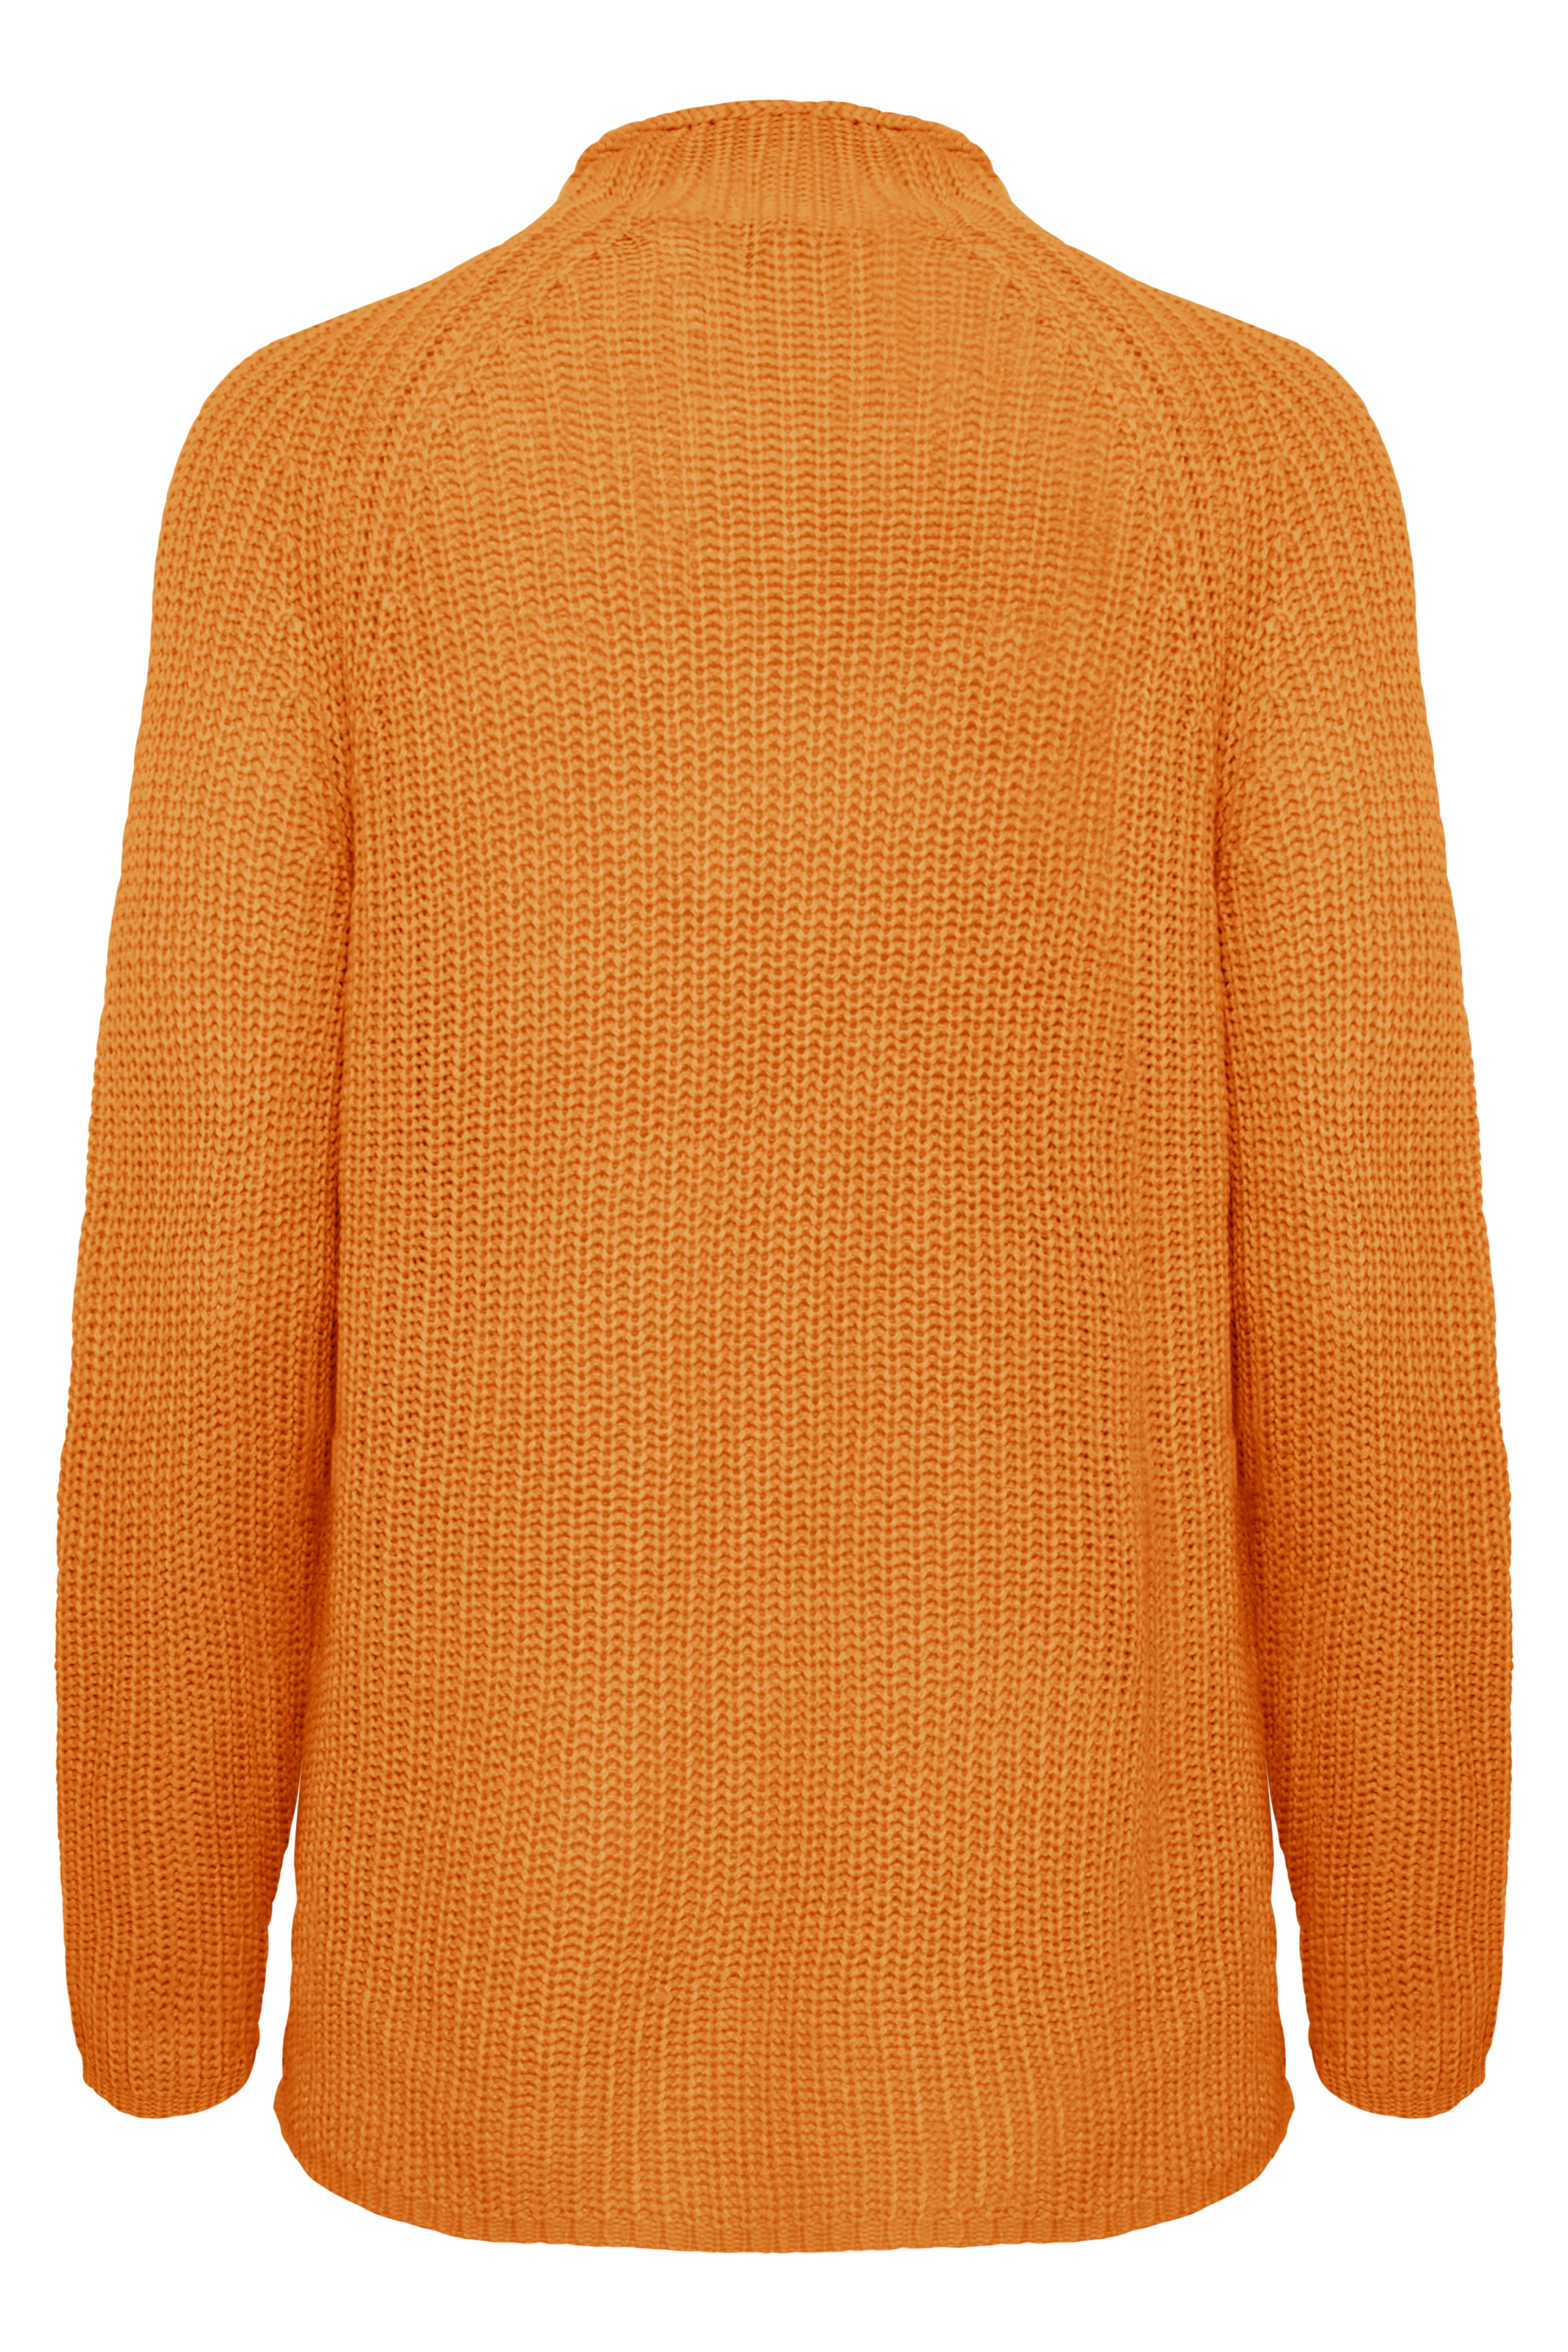 Sun Orange Knitted pullover from b.young – Buy Sun Orange Knitted pullover from size XS-XXL here